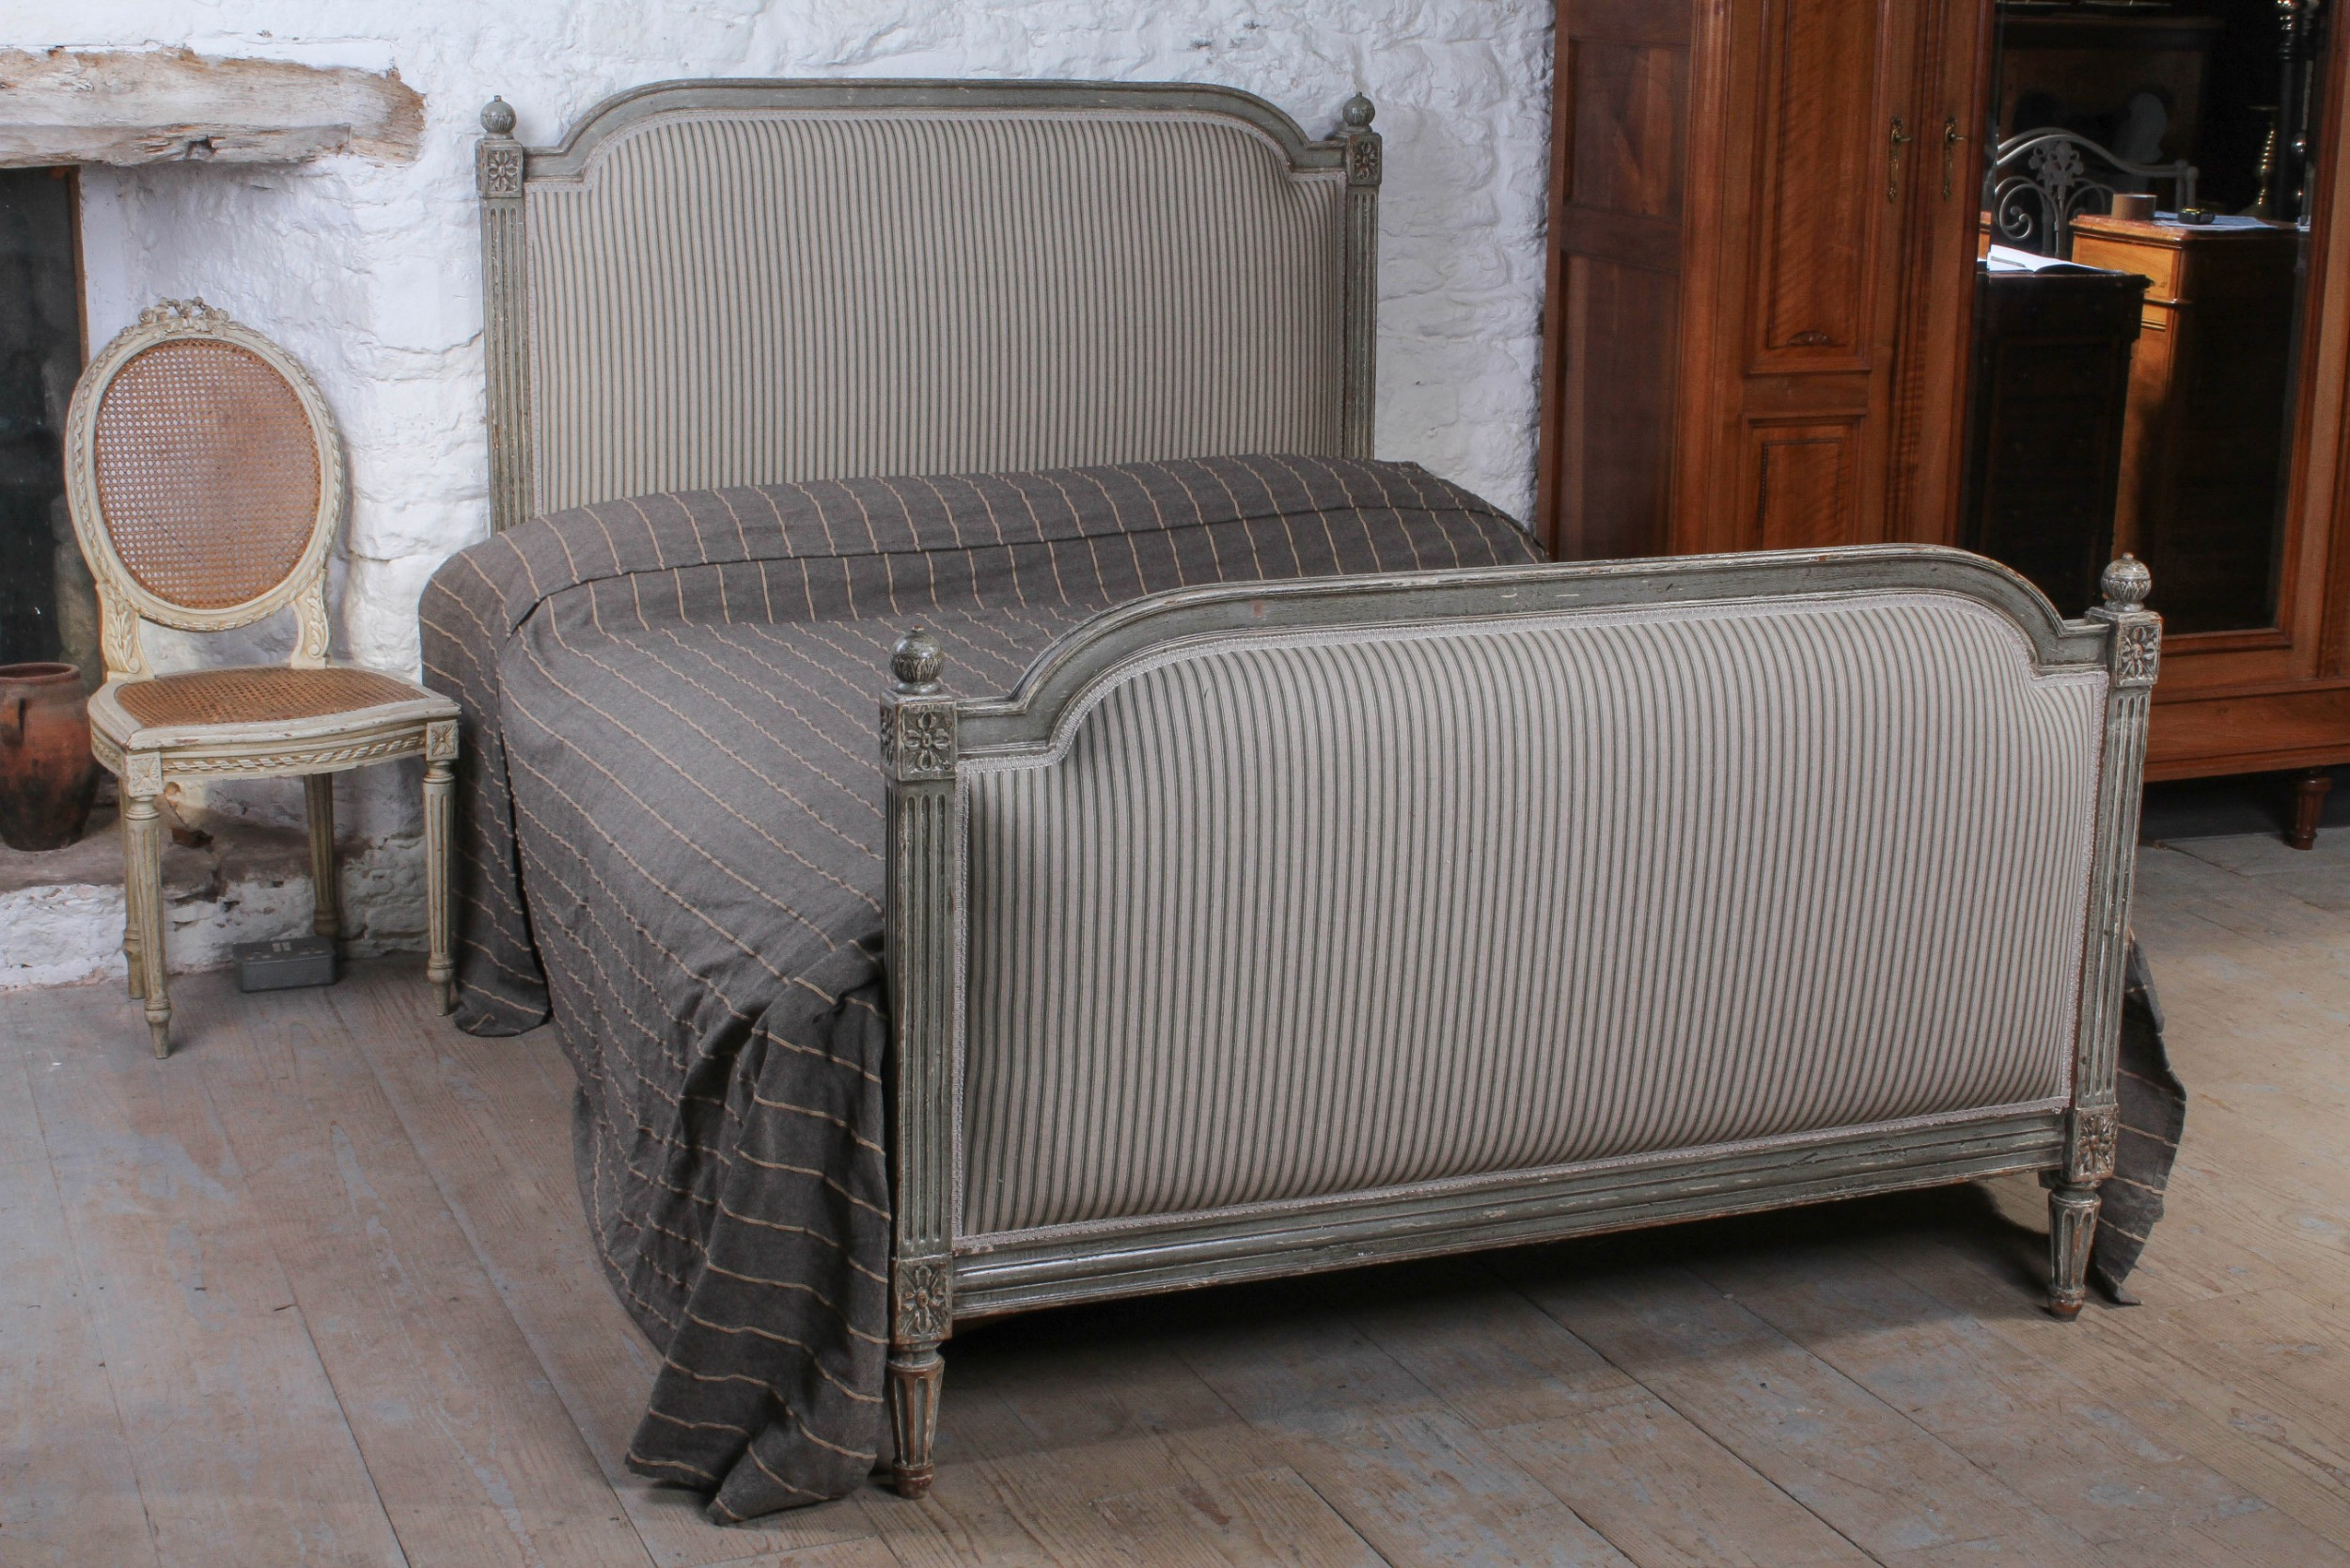 Picture of: Gorgeous French Empire Style Upholstered Double Bed 603416 Sellingantiques Co Uk